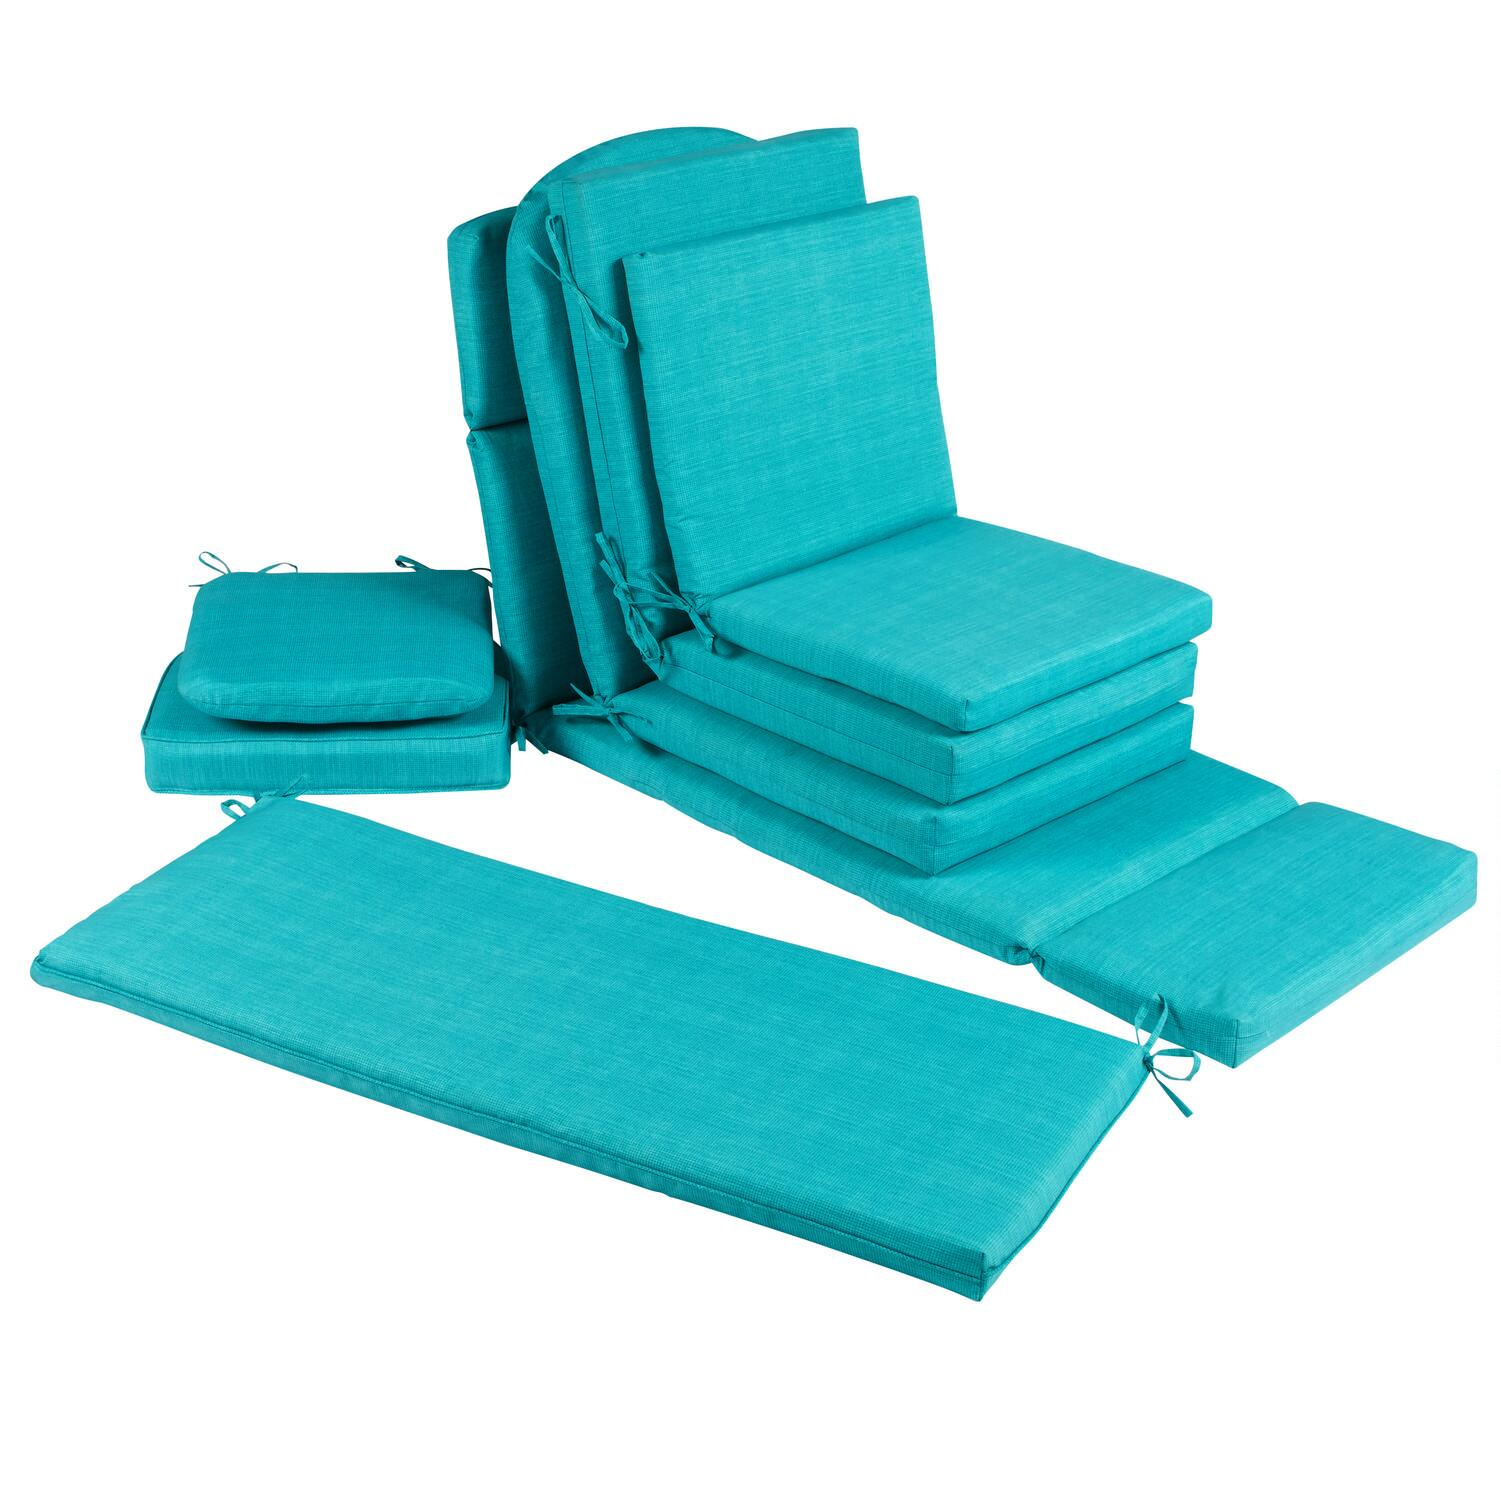 solid turquoise indoor outdoor chair cushions collection